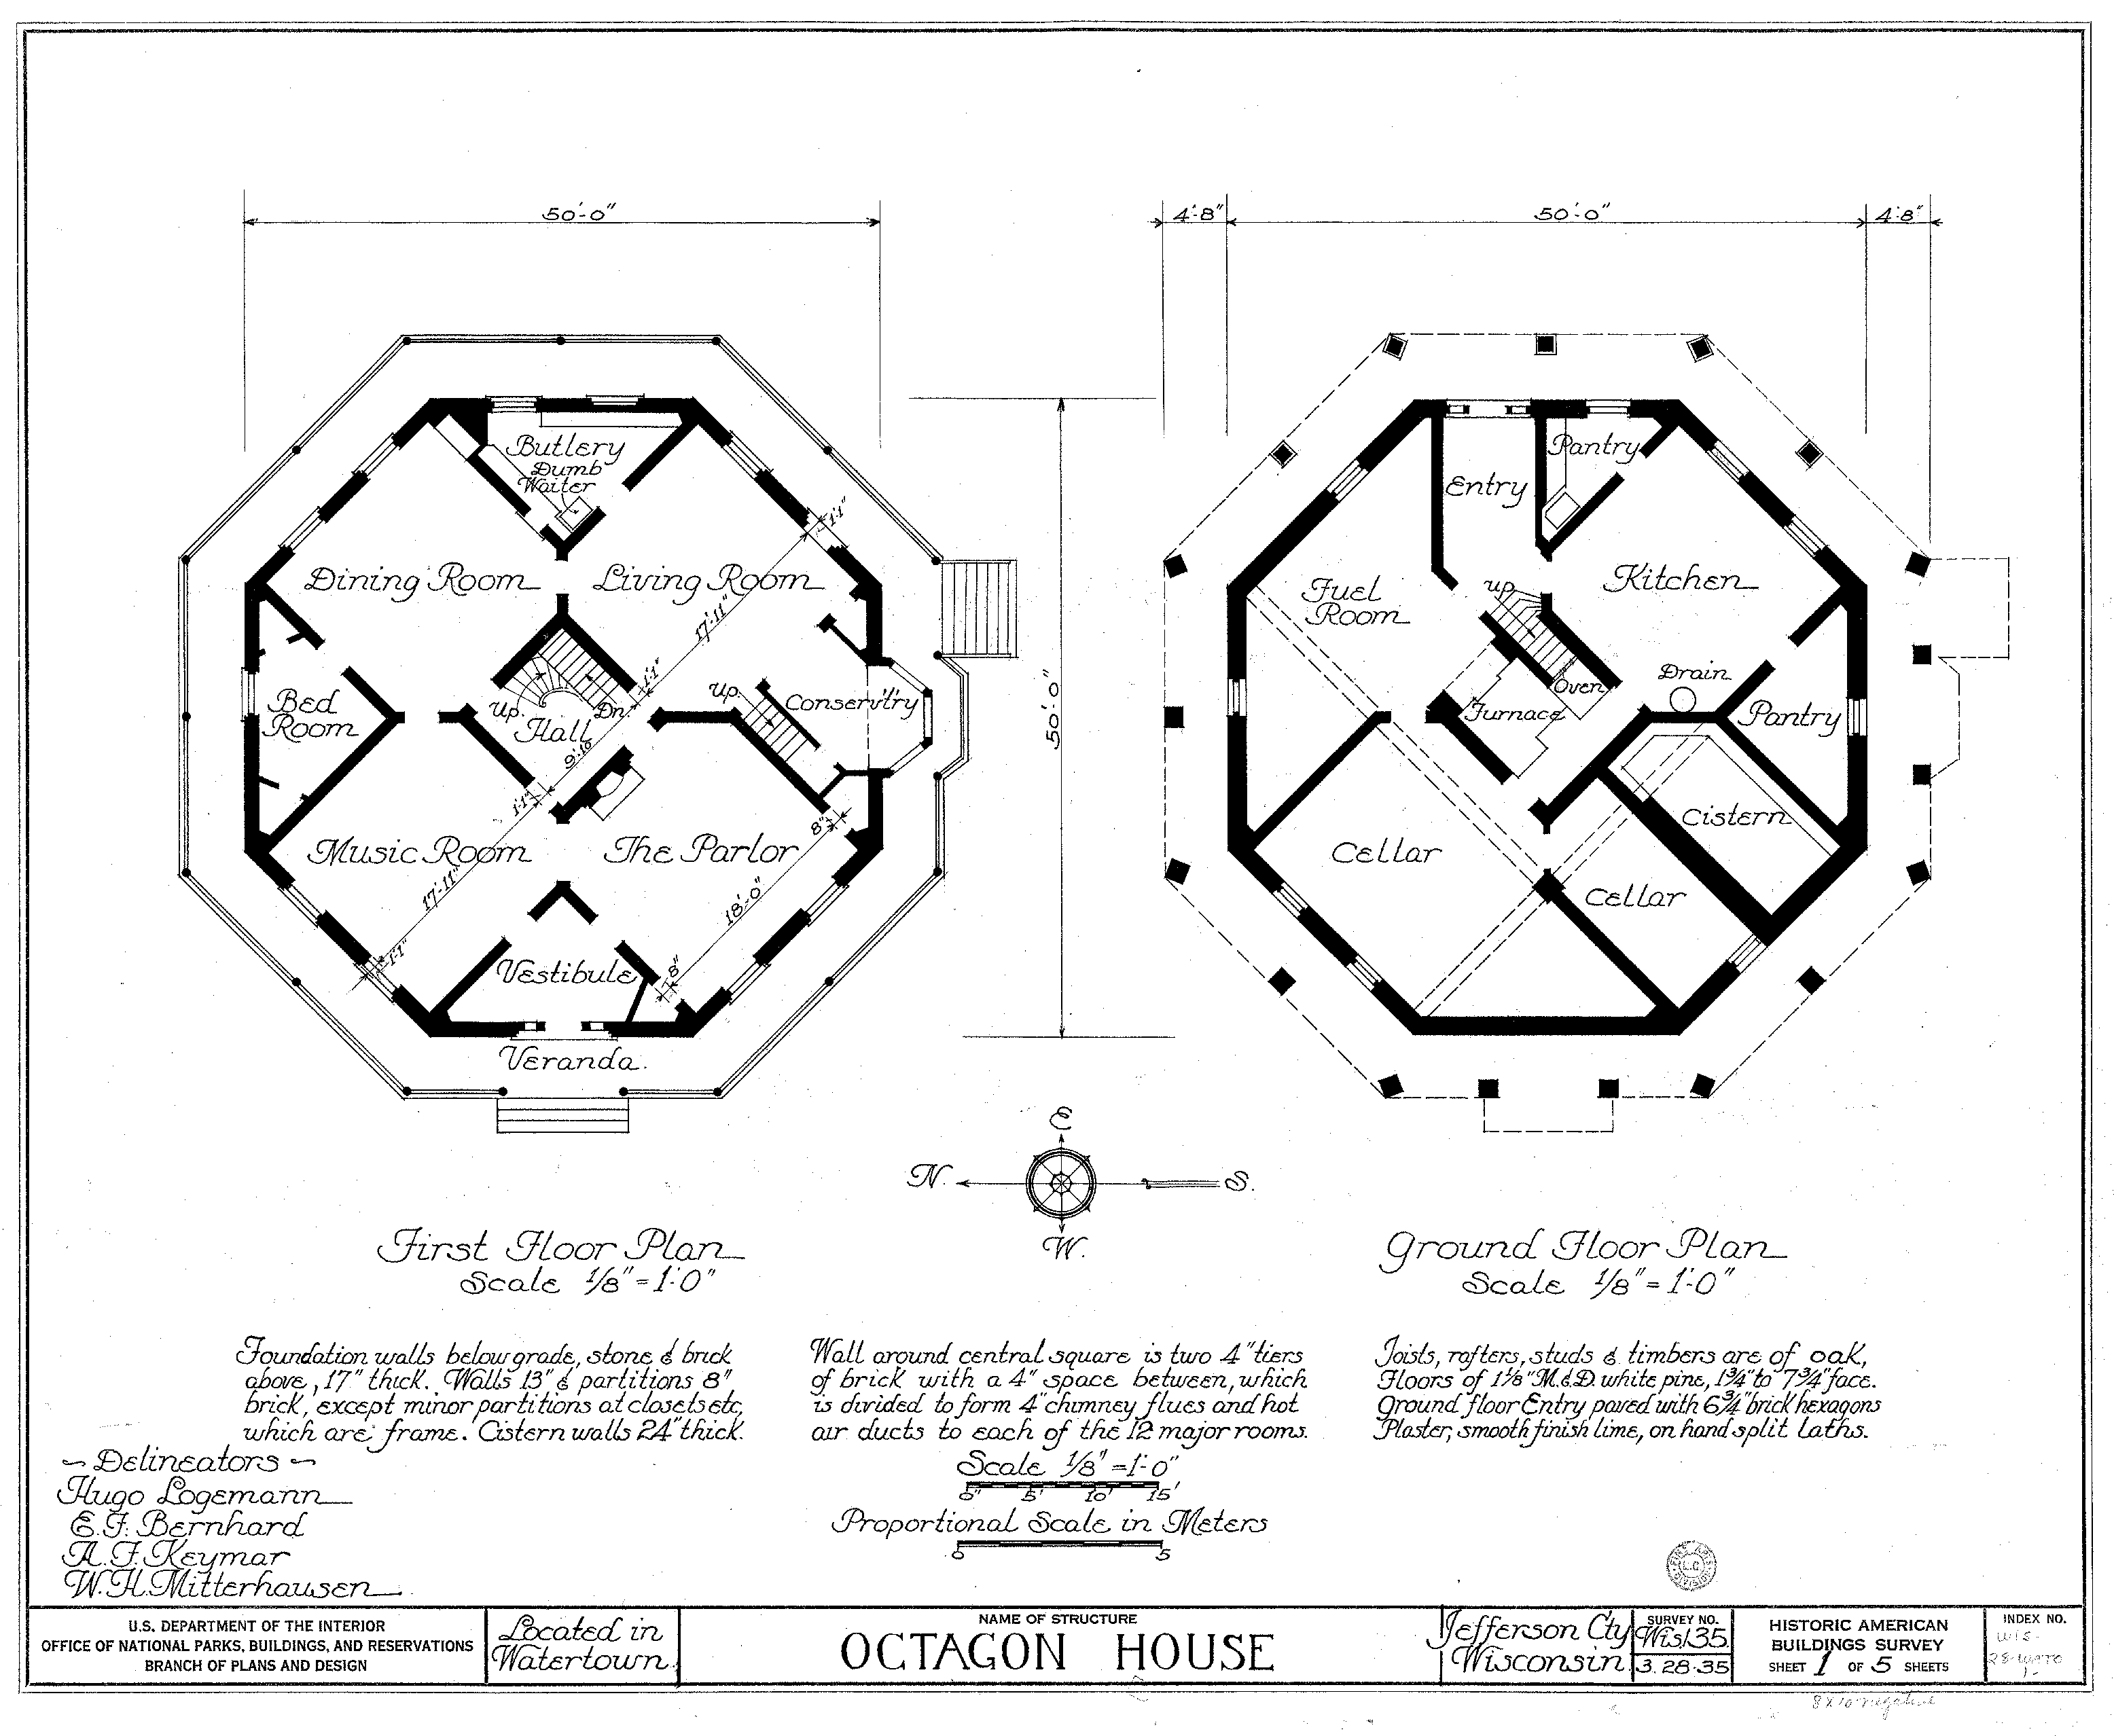 Remarkable Watertown Octagon House Plans 3112 x 2556 · 117 kB · png